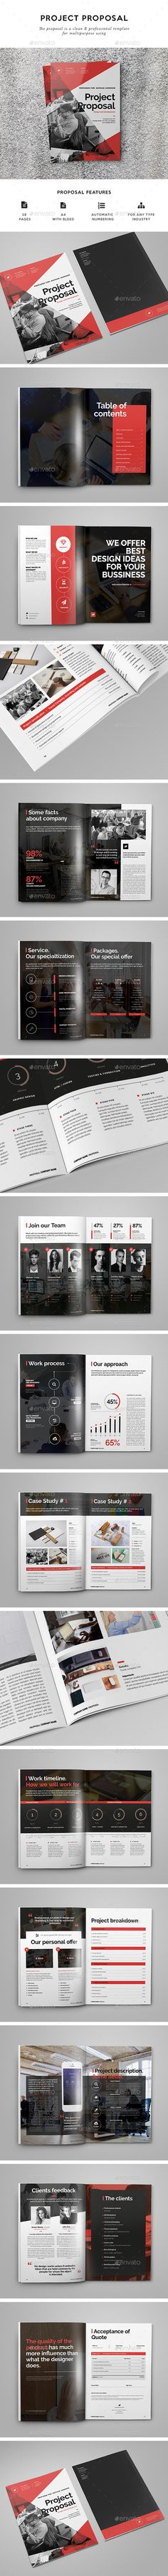 Modern and Clean Proposal Template InDesign INDD. Download here: http://graphicriver.net/item/proposal/15598150?ref=ksioks